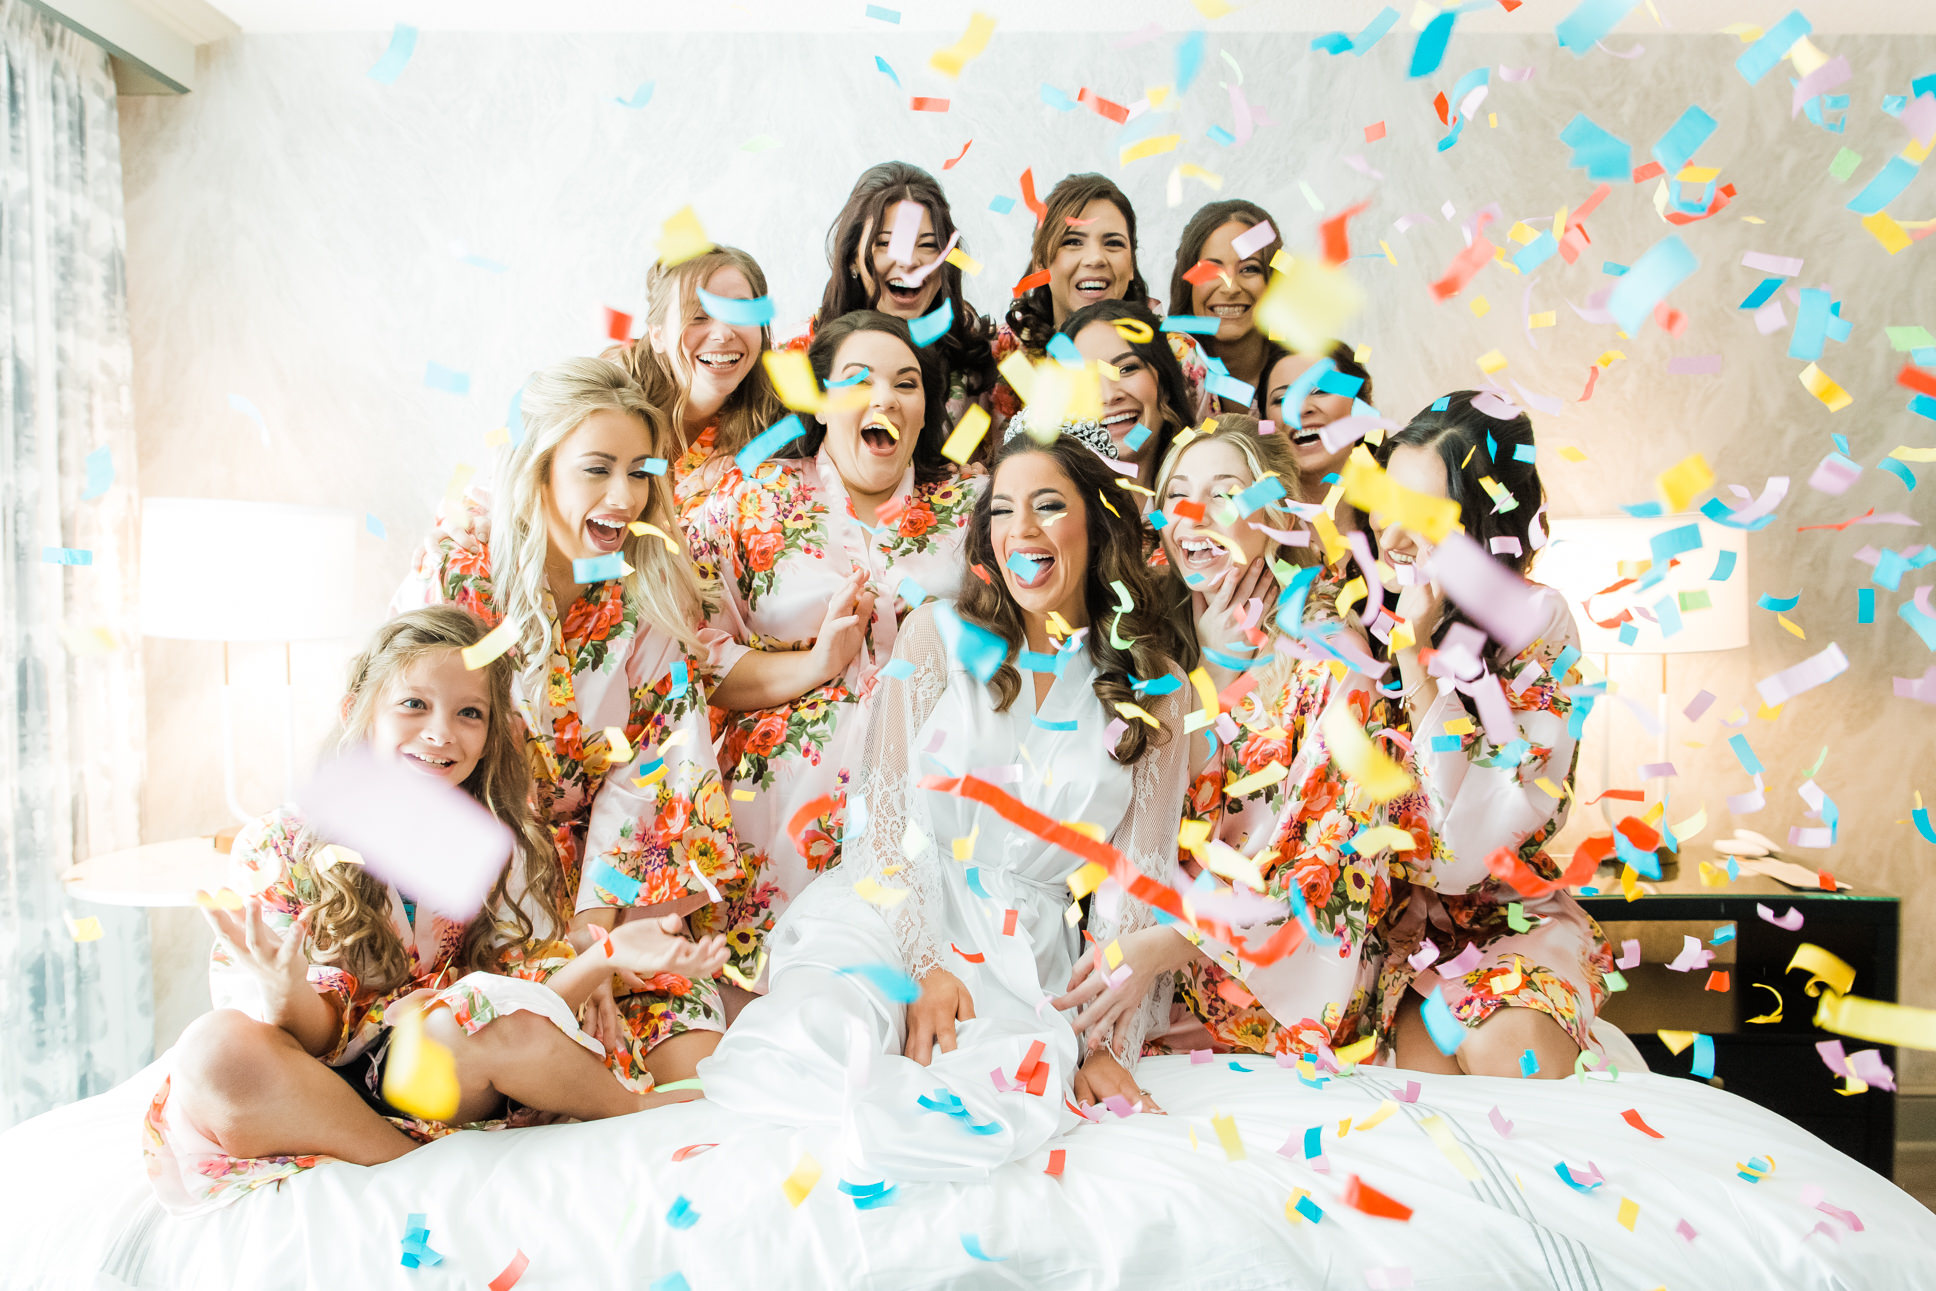 Tampa Bride and Bridesmaids in Floral Robes Fun Colorful Confetti Getting Wedding Ready Portrait